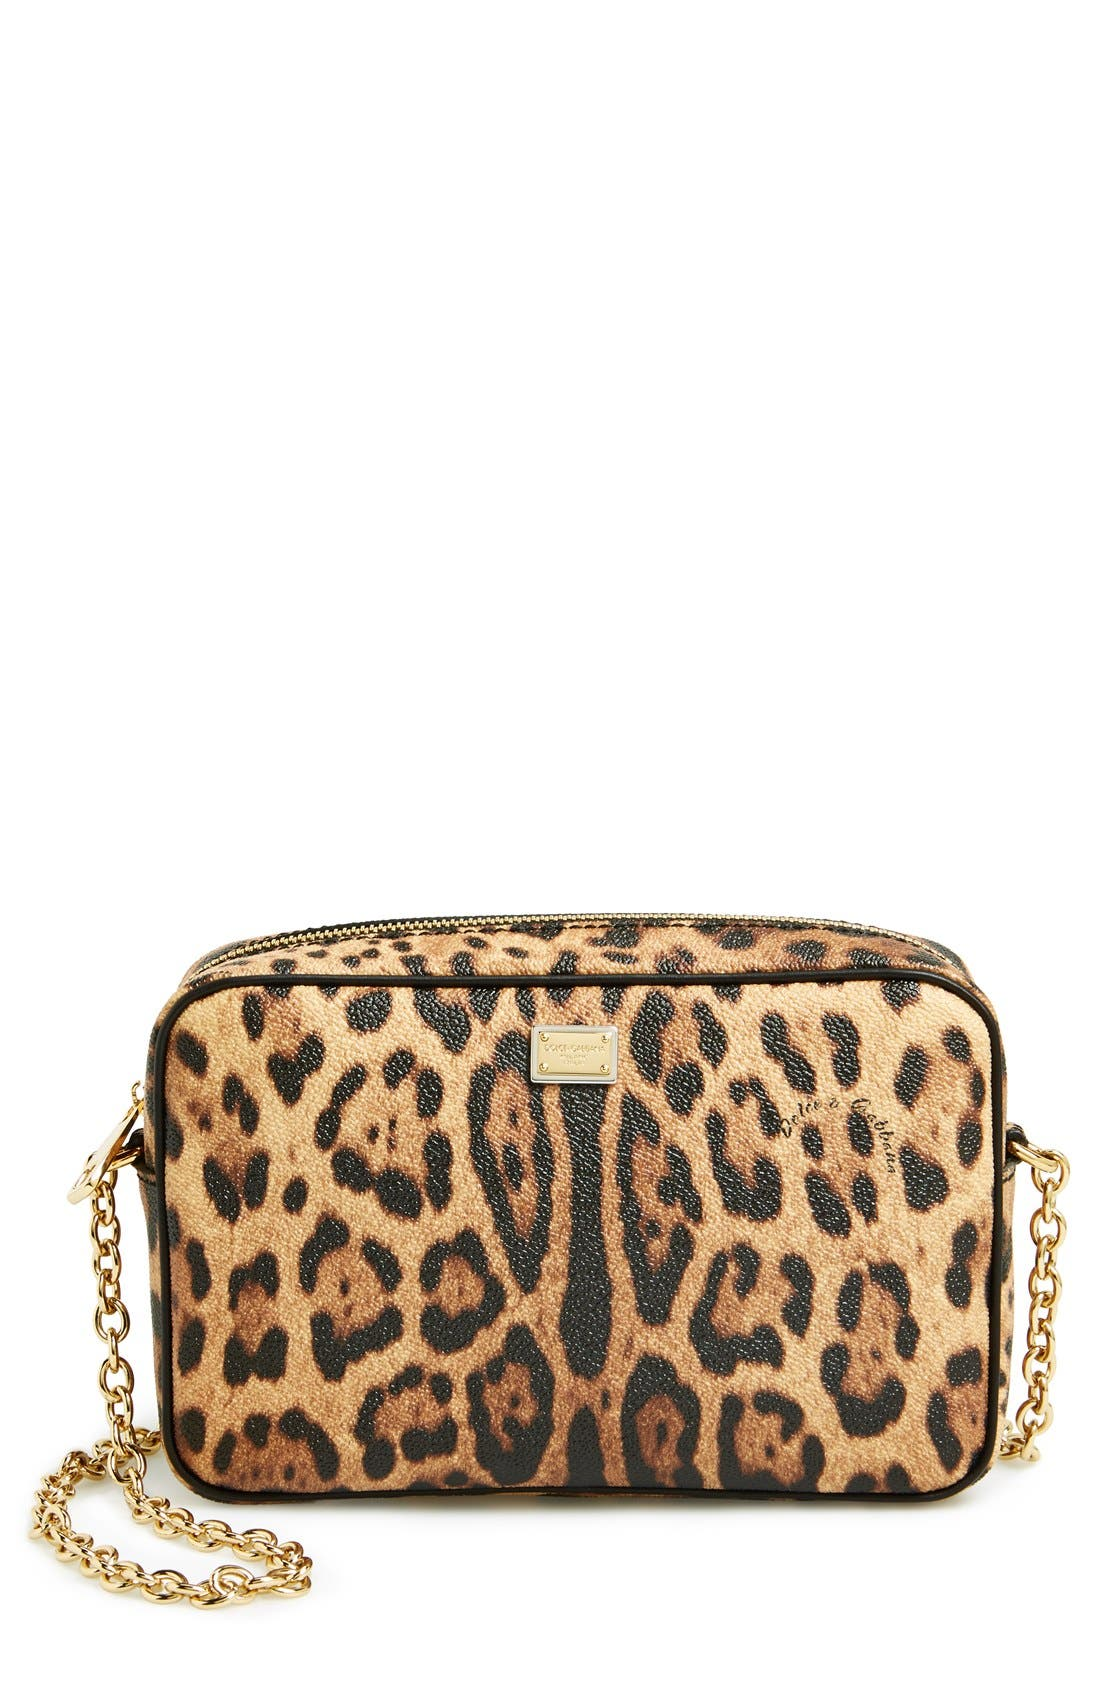 Alternate Image 1 Selected - Dolce&Gabbana 'Miss Cleo - Box' Crossbody Bag